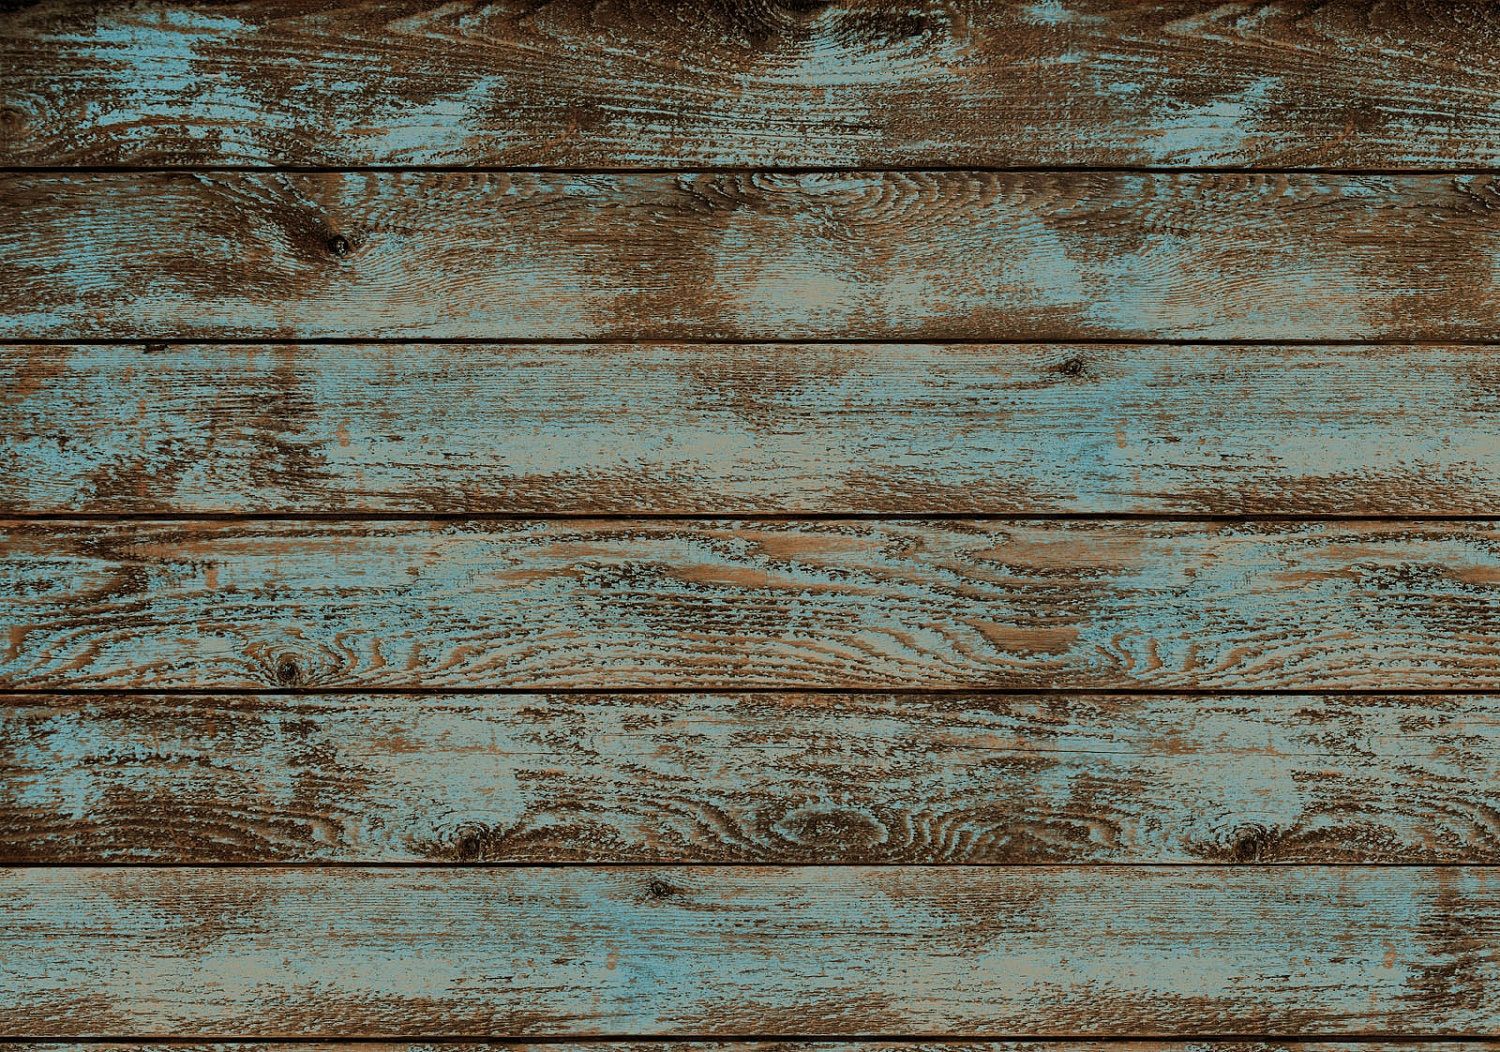 Rustic Barn Wood Flooring 1500 x 1052